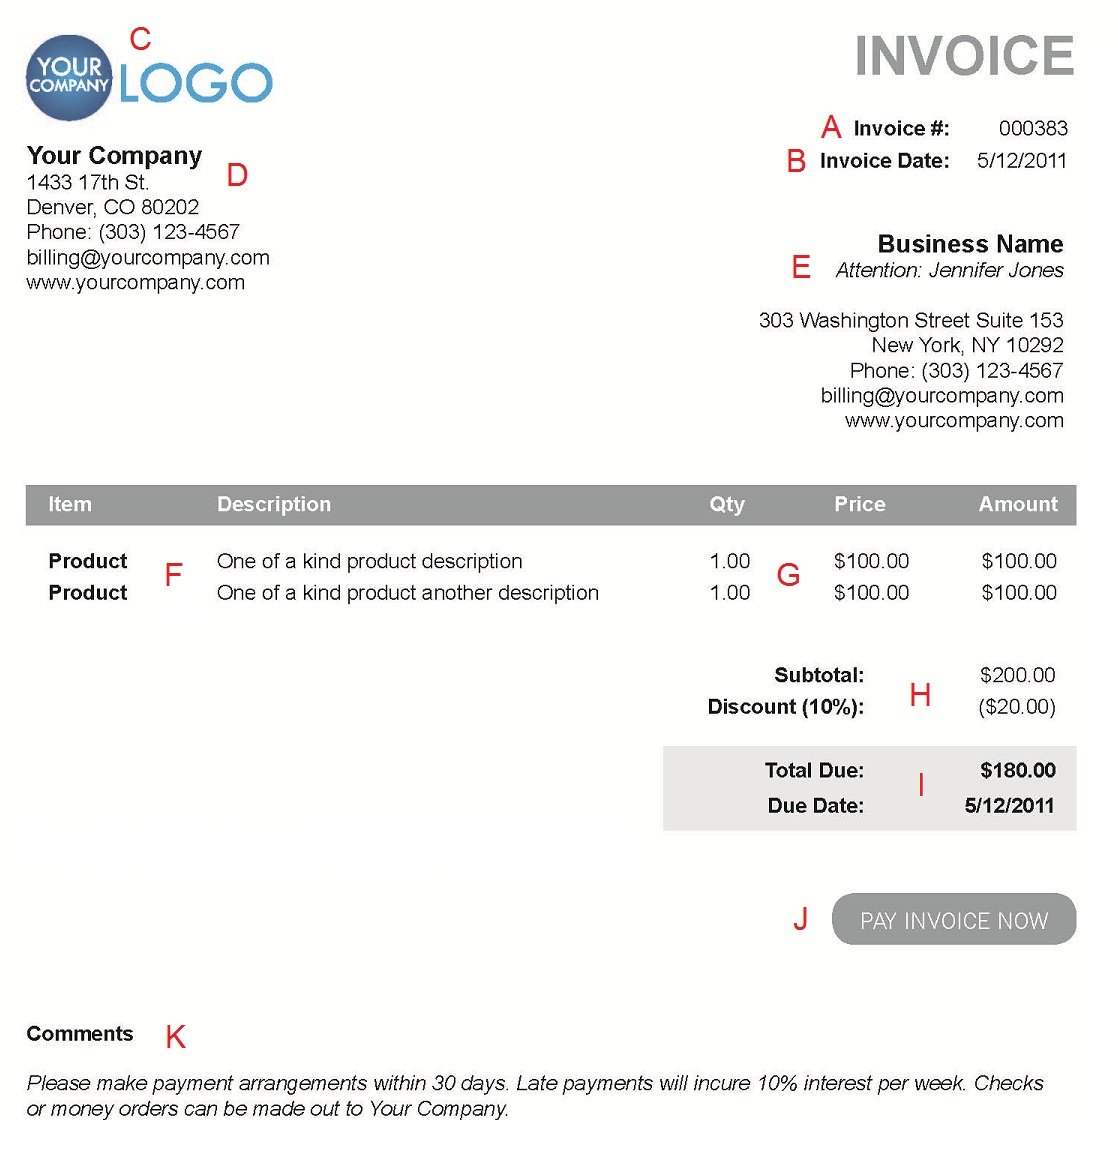 Aaaaeroincus  Wonderful The  Different Sections Of An Electronic Payment Invoice With Magnificent A  With Appealing Get Lic Premium Paid Receipt Online Also Sample Receipt Book In Addition Could You Please Confirm Receipt Of This Email And Private Sale Receipt Template As Well As Taxi Bill Receipt Additionally Petty Cash Receipt Sample From Paysimplecom With Aaaaeroincus  Magnificent The  Different Sections Of An Electronic Payment Invoice With Appealing A  And Wonderful Get Lic Premium Paid Receipt Online Also Sample Receipt Book In Addition Could You Please Confirm Receipt Of This Email From Paysimplecom